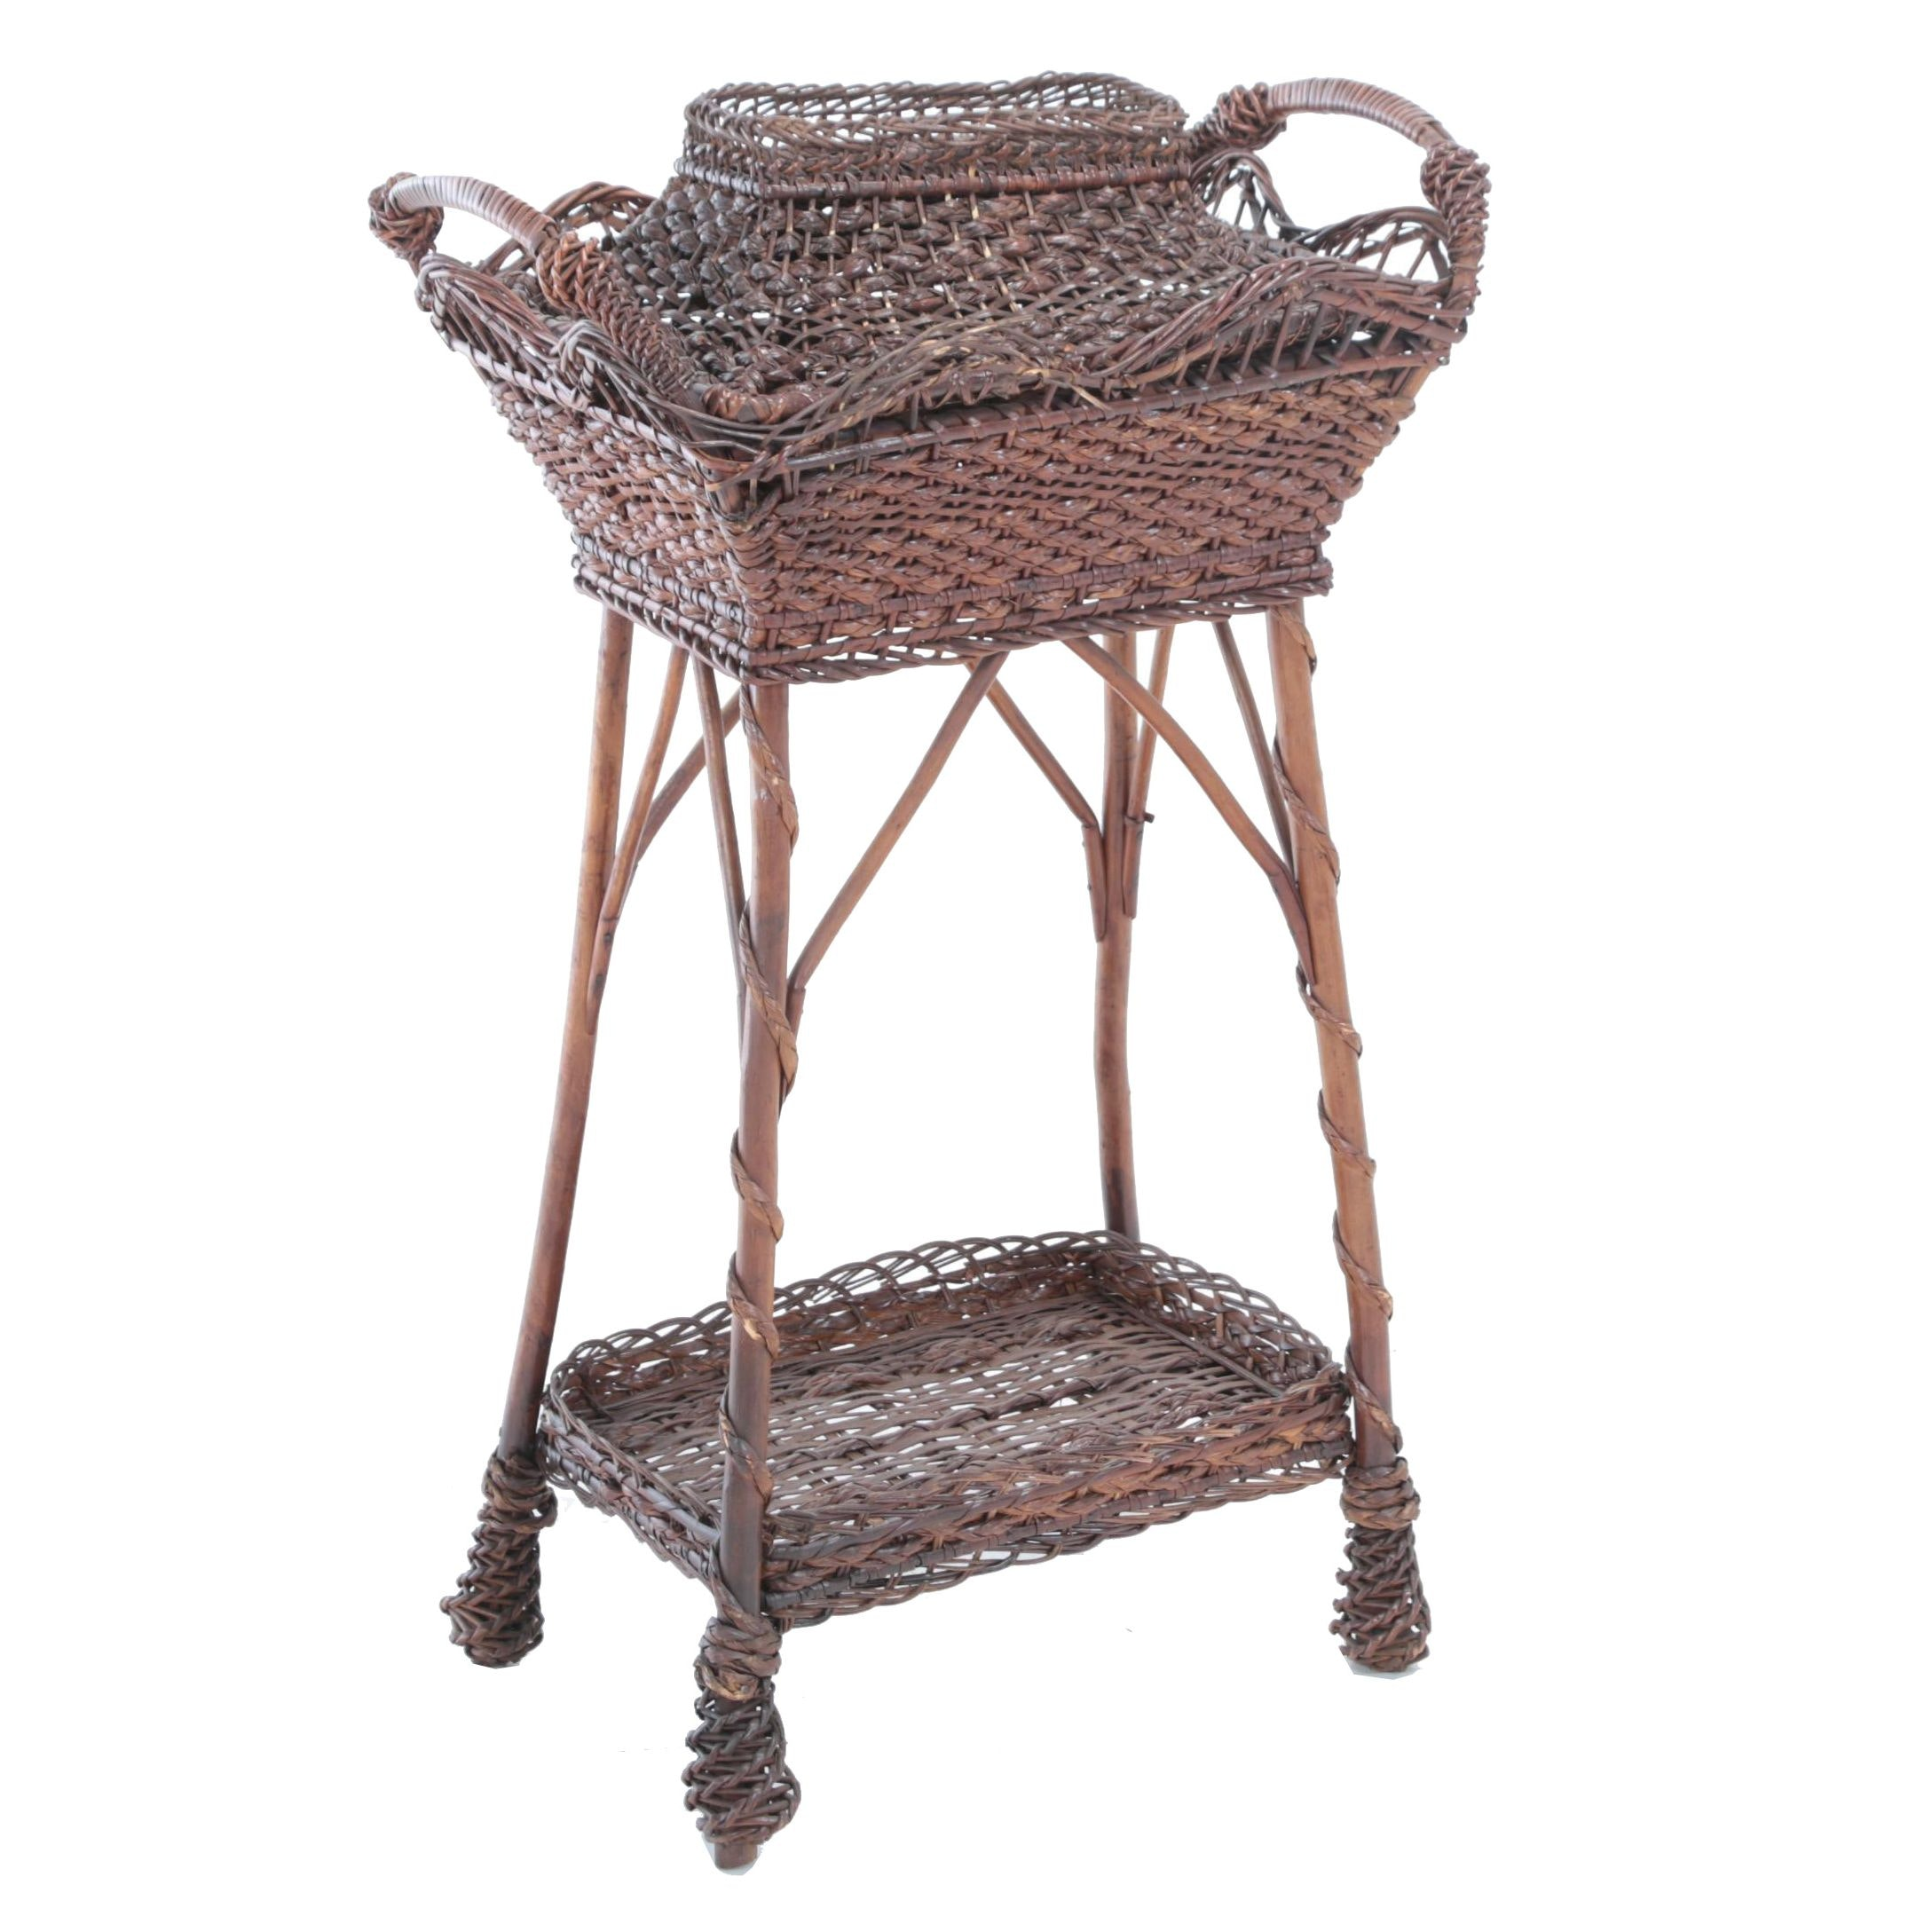 Late Victorian Brown Wicker Sewing Stand, Late 19th/Early 20th Century